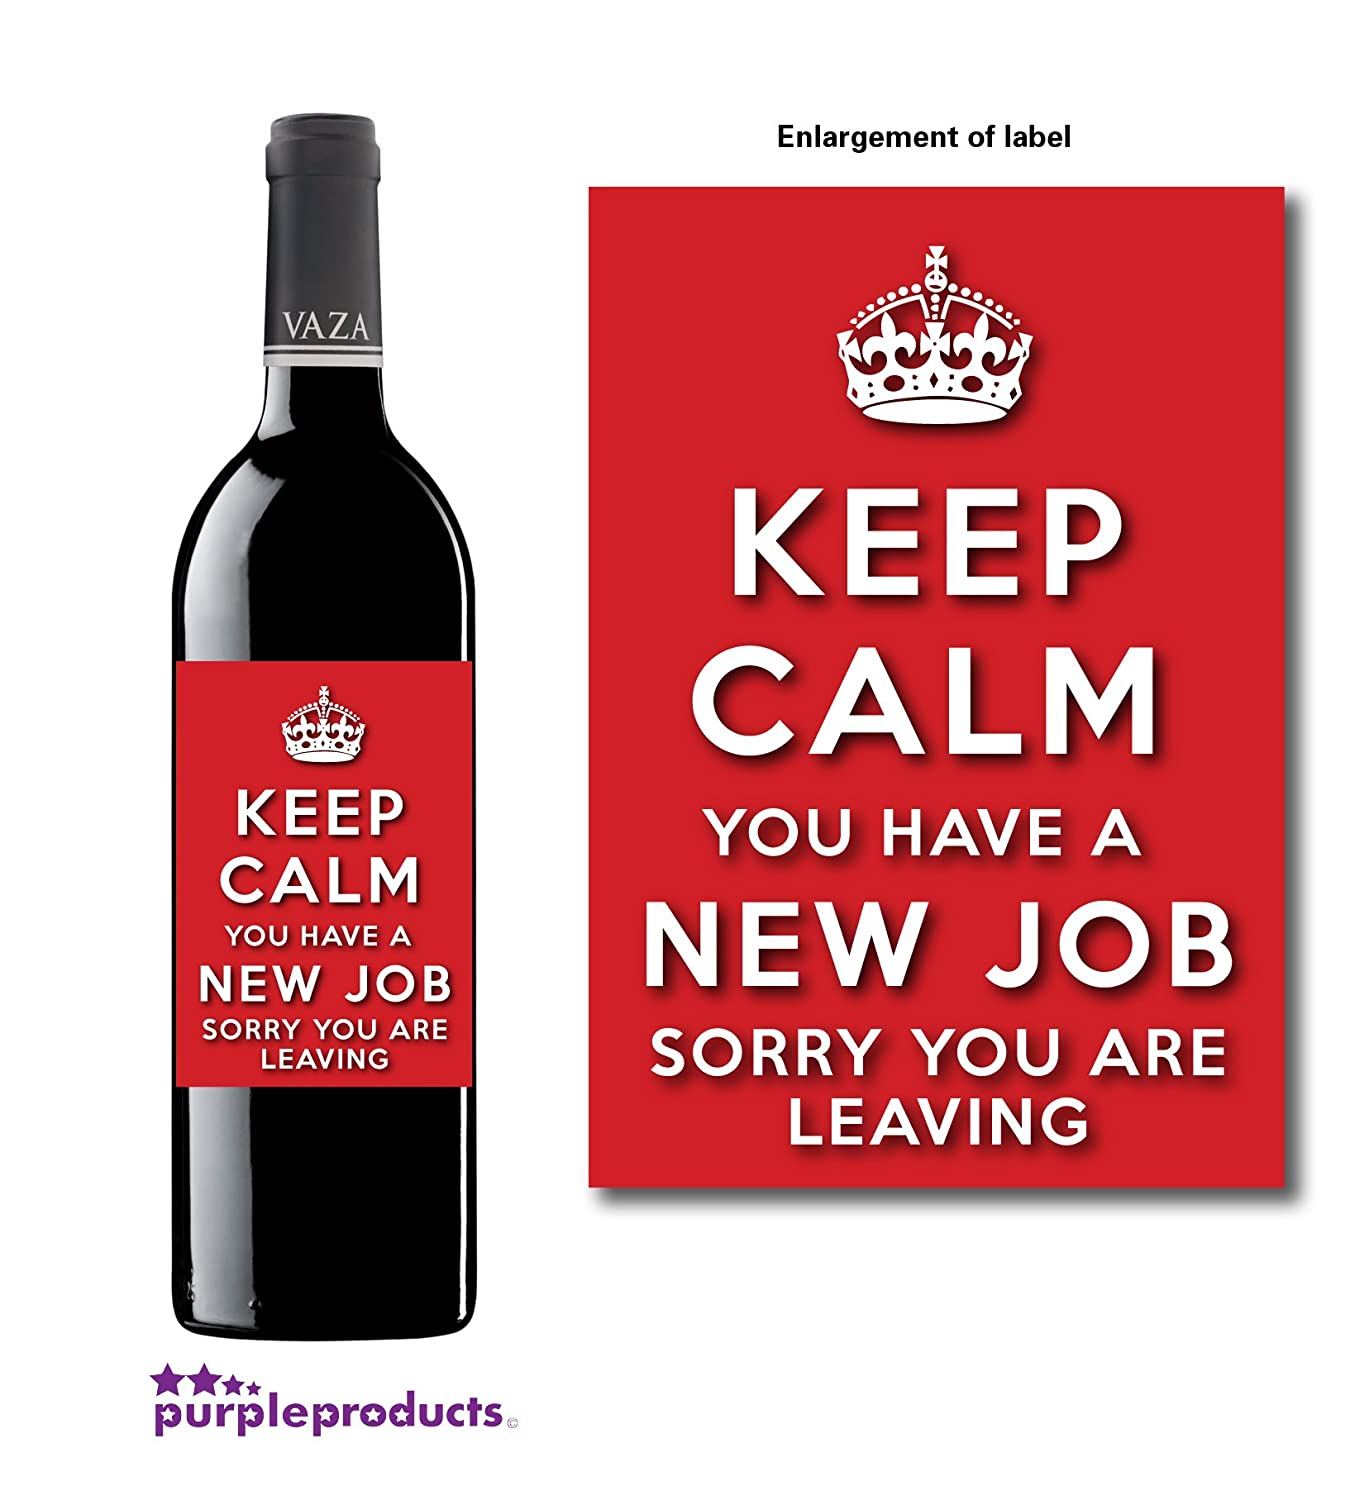 new job survival kit gift great novelty gift or alternative to a keep calm new job sorry you re leaving wine bottle label celebration gift for women